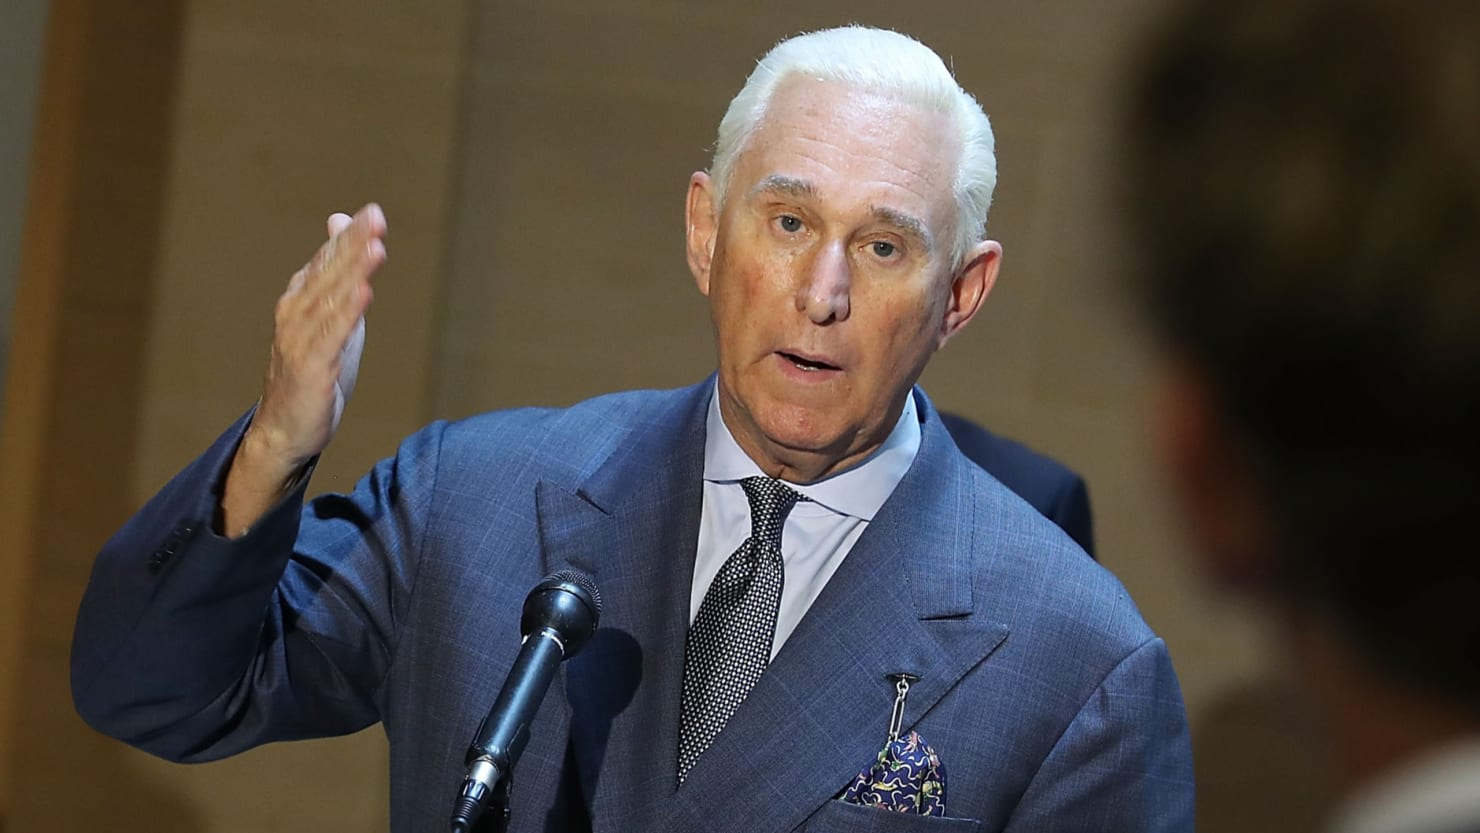 Report: Mueller's Office Questioning Paul Manafort About Roger Stone